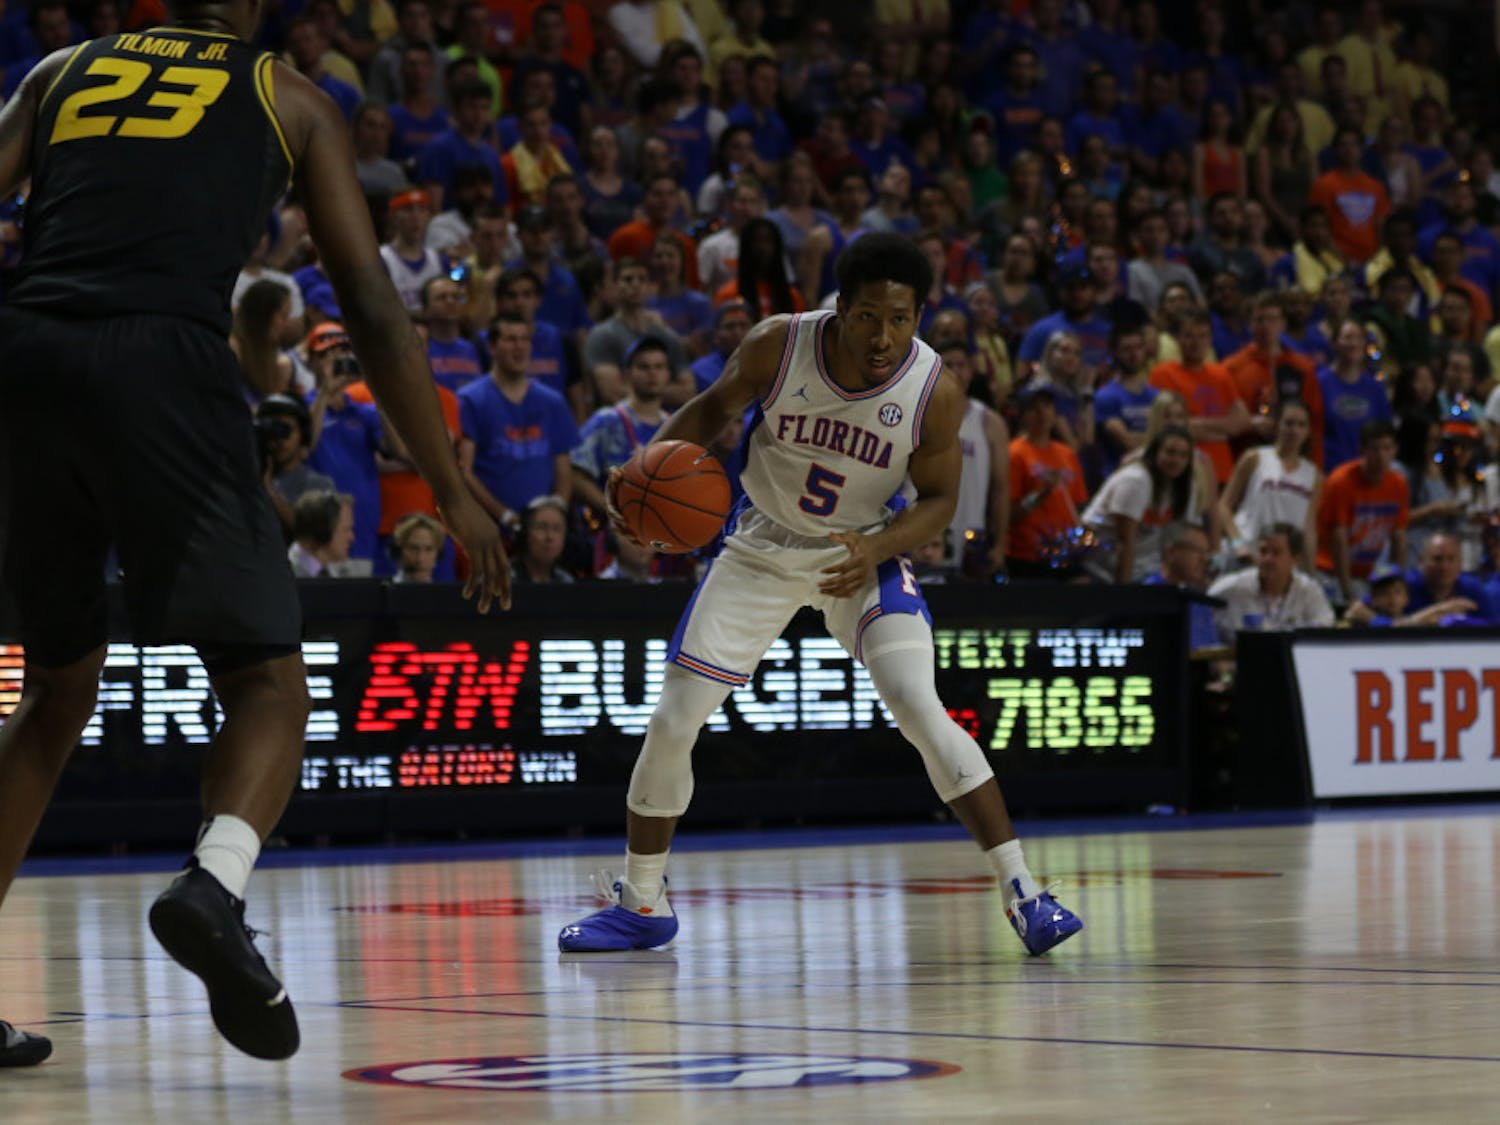 Senior guard KeVaughn Allen has scored in double figures in 22 of the Gators' 27 games this season, and he has led the team in scoring 11 times.